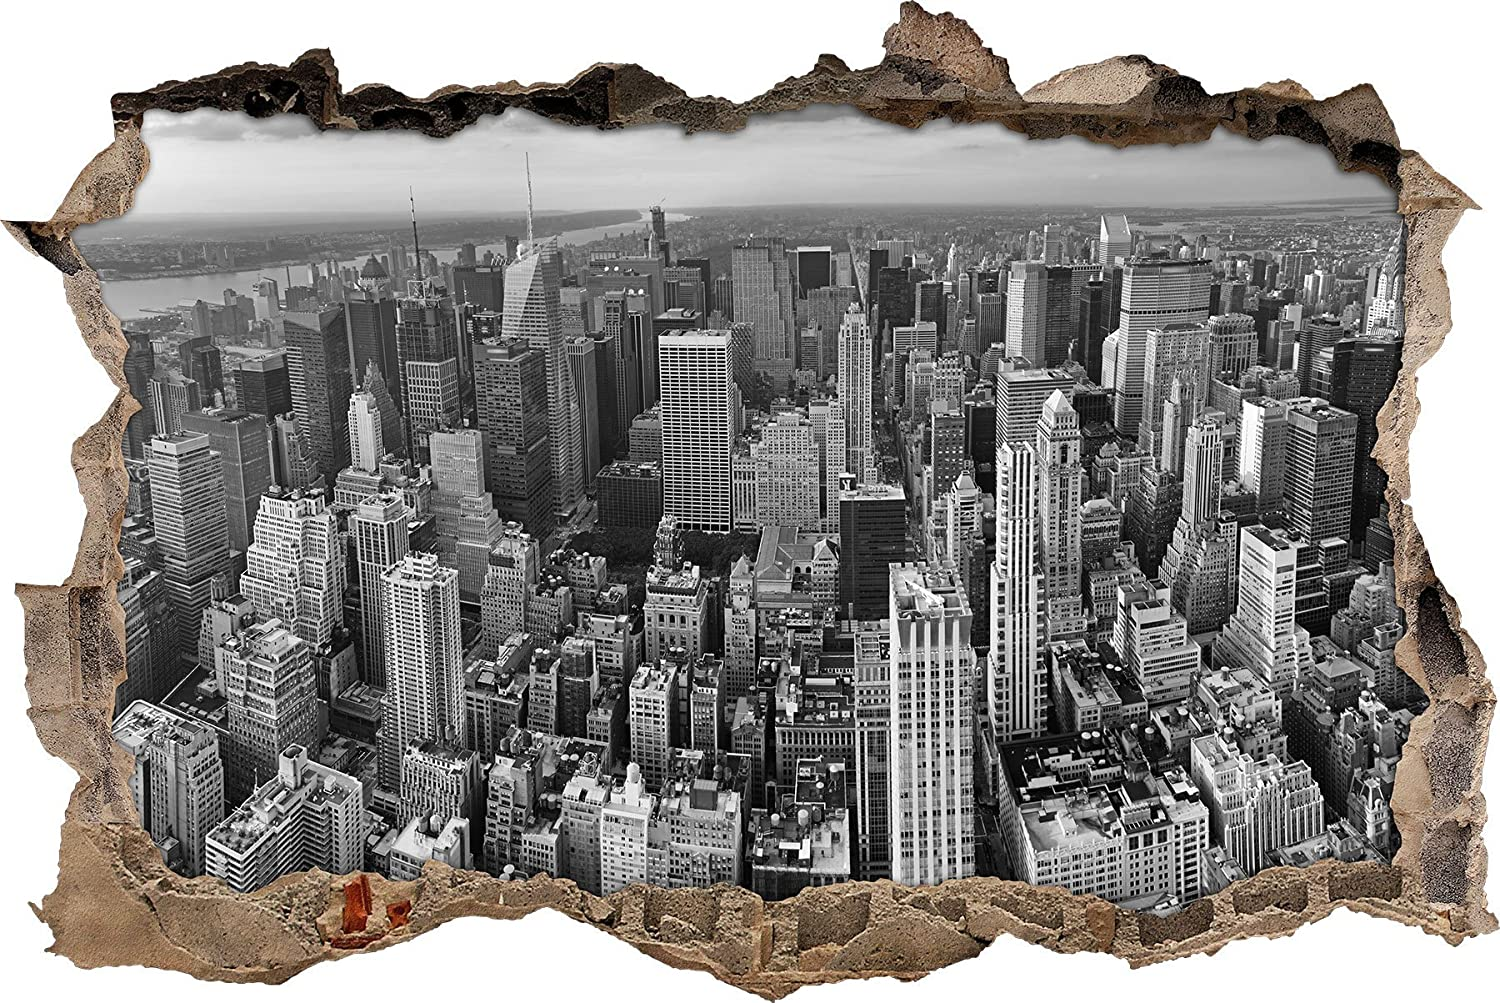 Eitelkeit Wandtattoo New York Referenz Von Pixxprint 3d_wd_1941_92x62 Skyline Black And White Wanddurchbruch